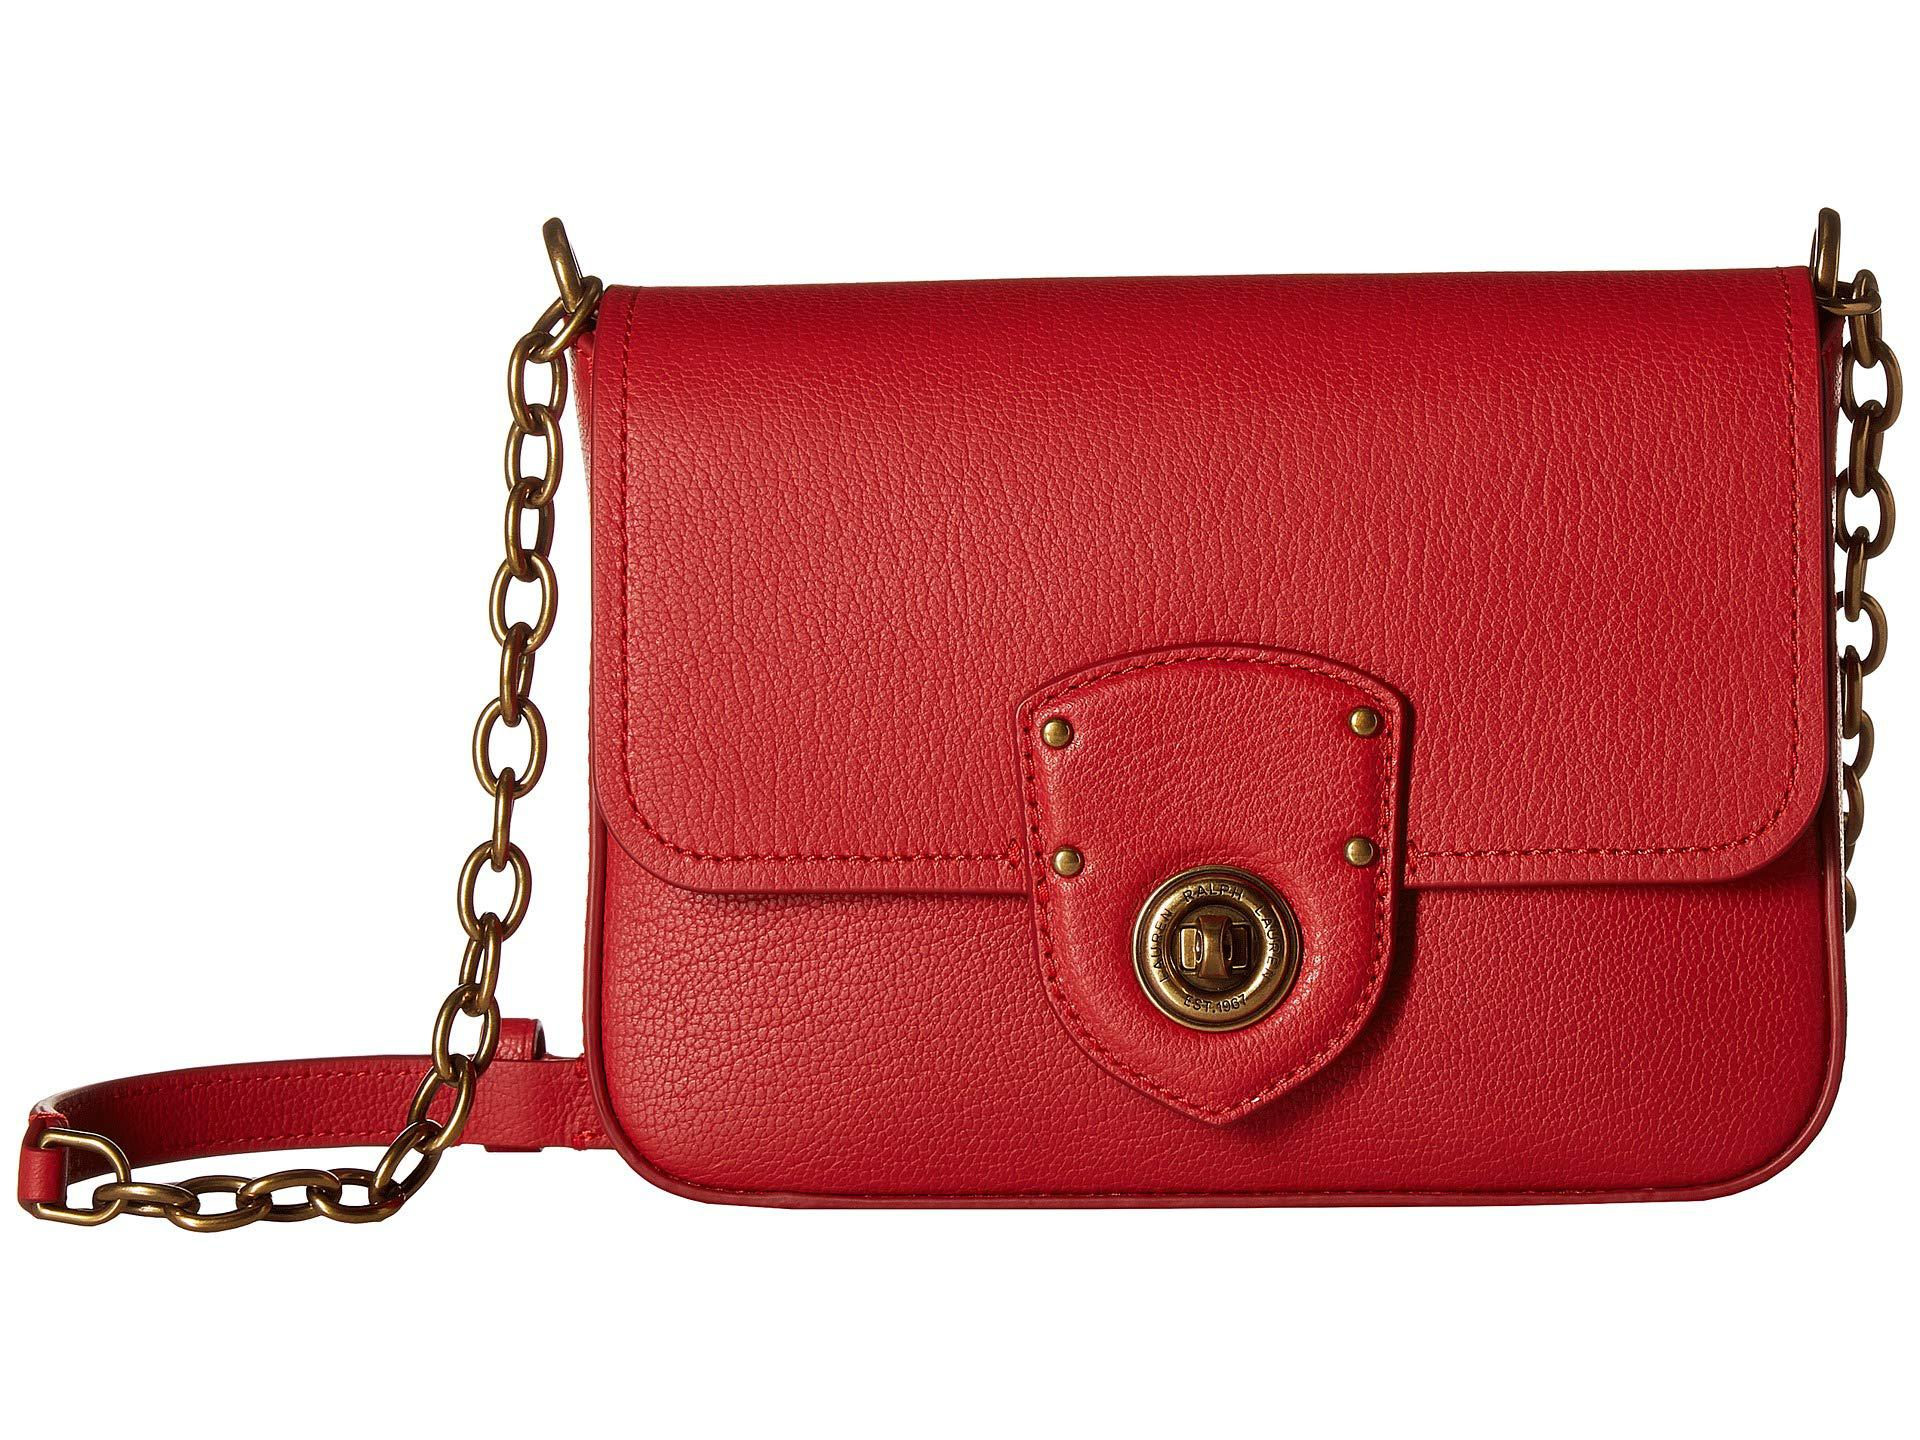 a9f83bd2cd Lyst - Lauren by Ralph Lauren Millbrook Chain Crossbody Small in Red ...